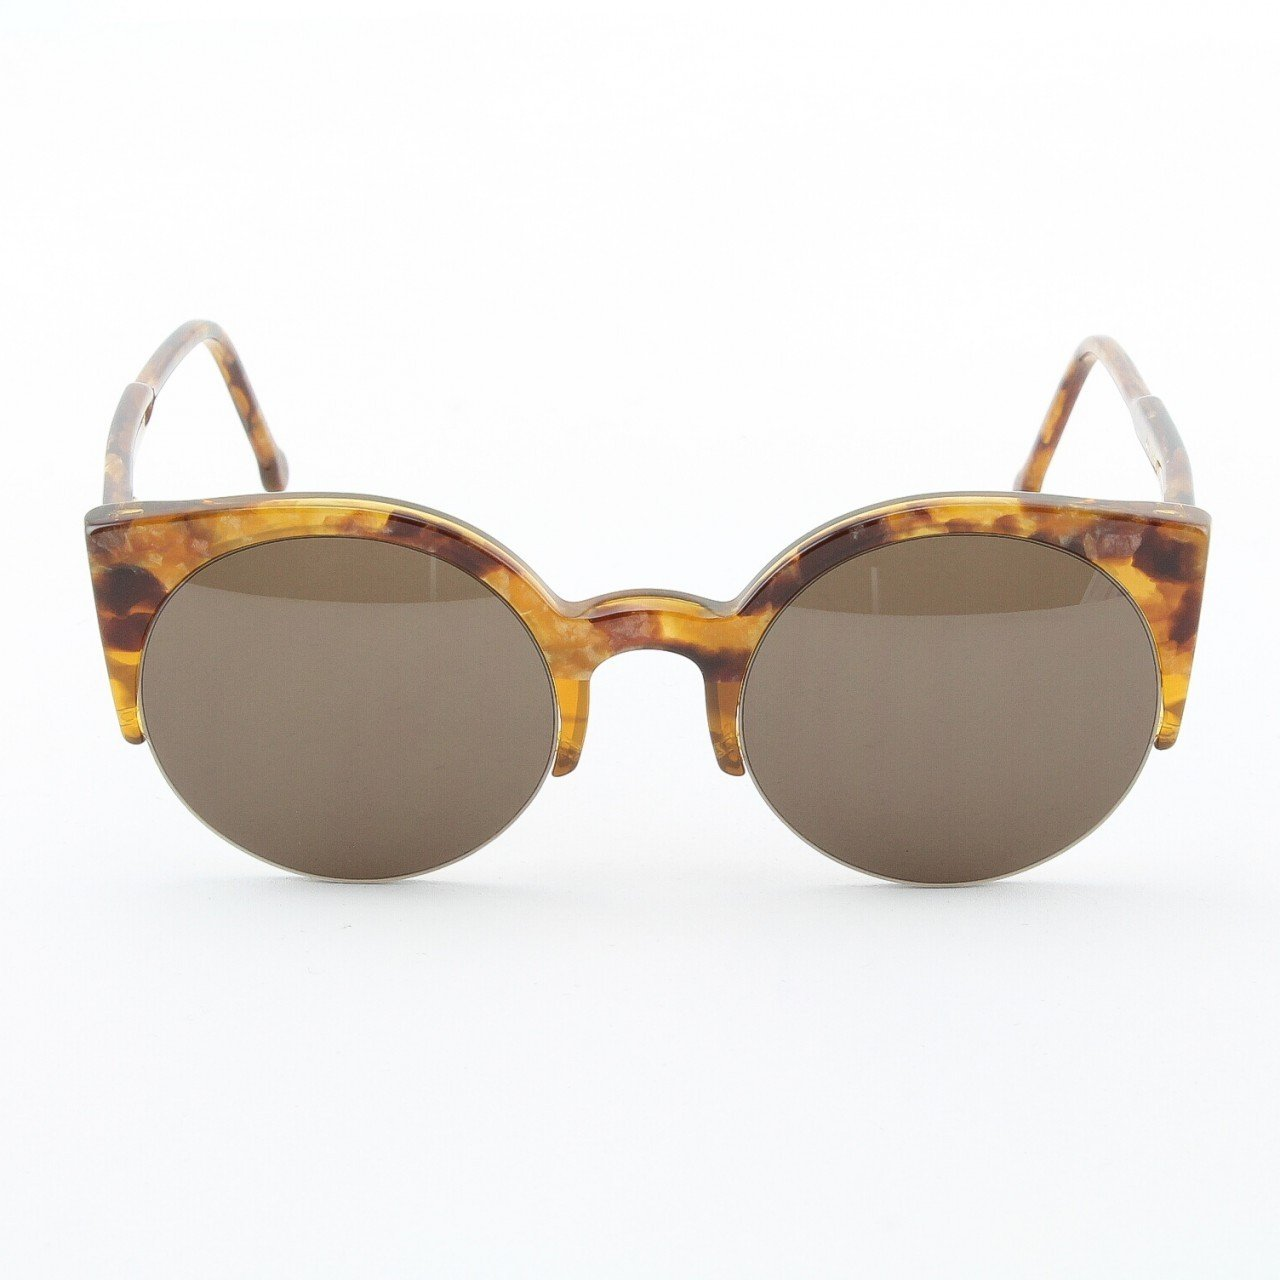 Super Lucia 529 Sunglasses Brown Stone with Brown Zeiss Lenses by RETROSUPERFUTURE